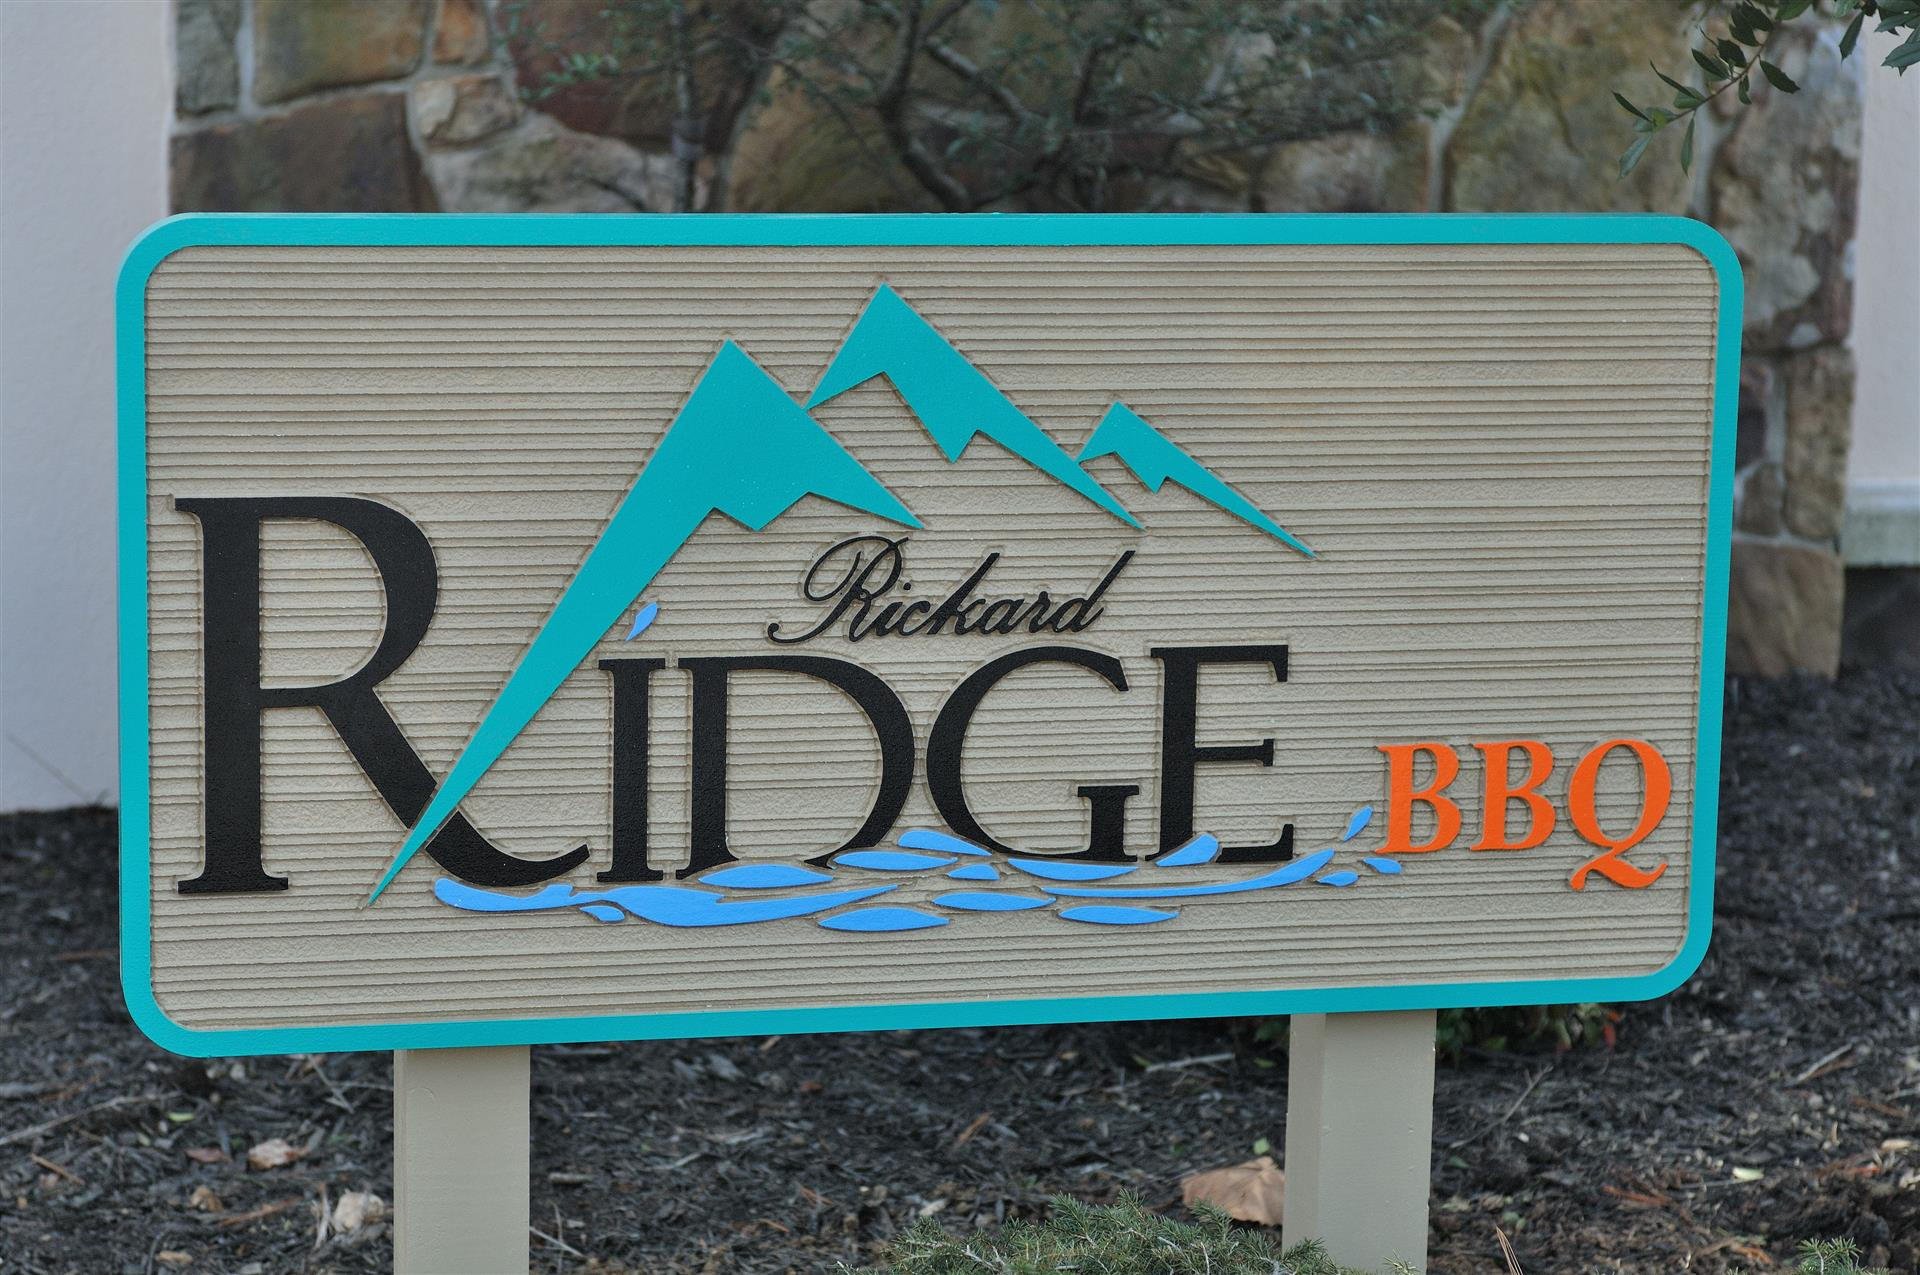 Rickard ridge bbq sign